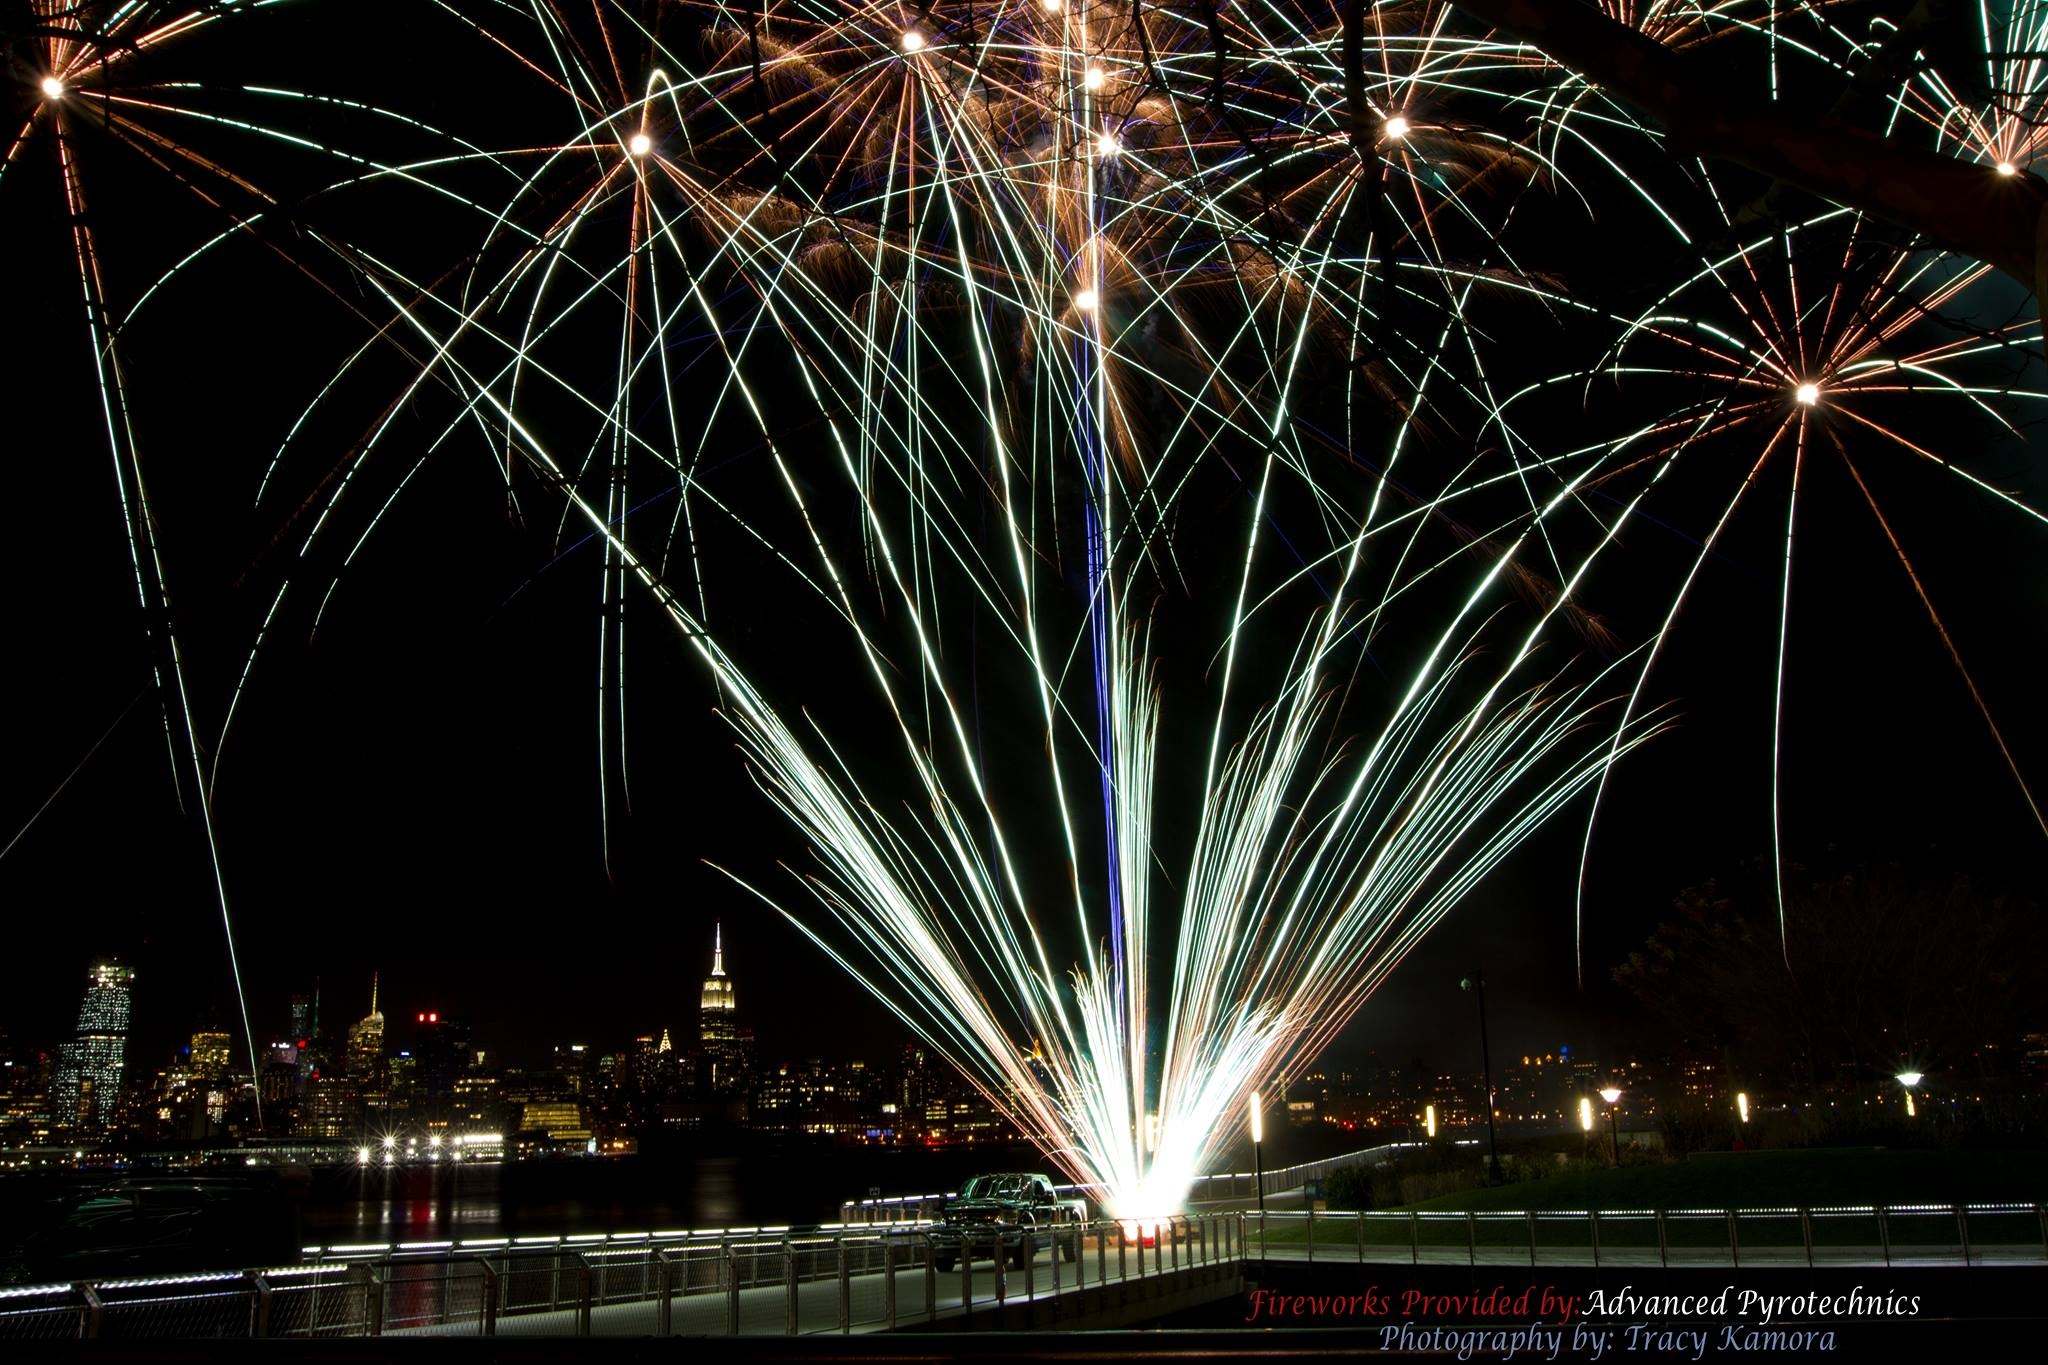 A silver fan cake ignites over the hudson for a show set up by a NJ fireworks company.